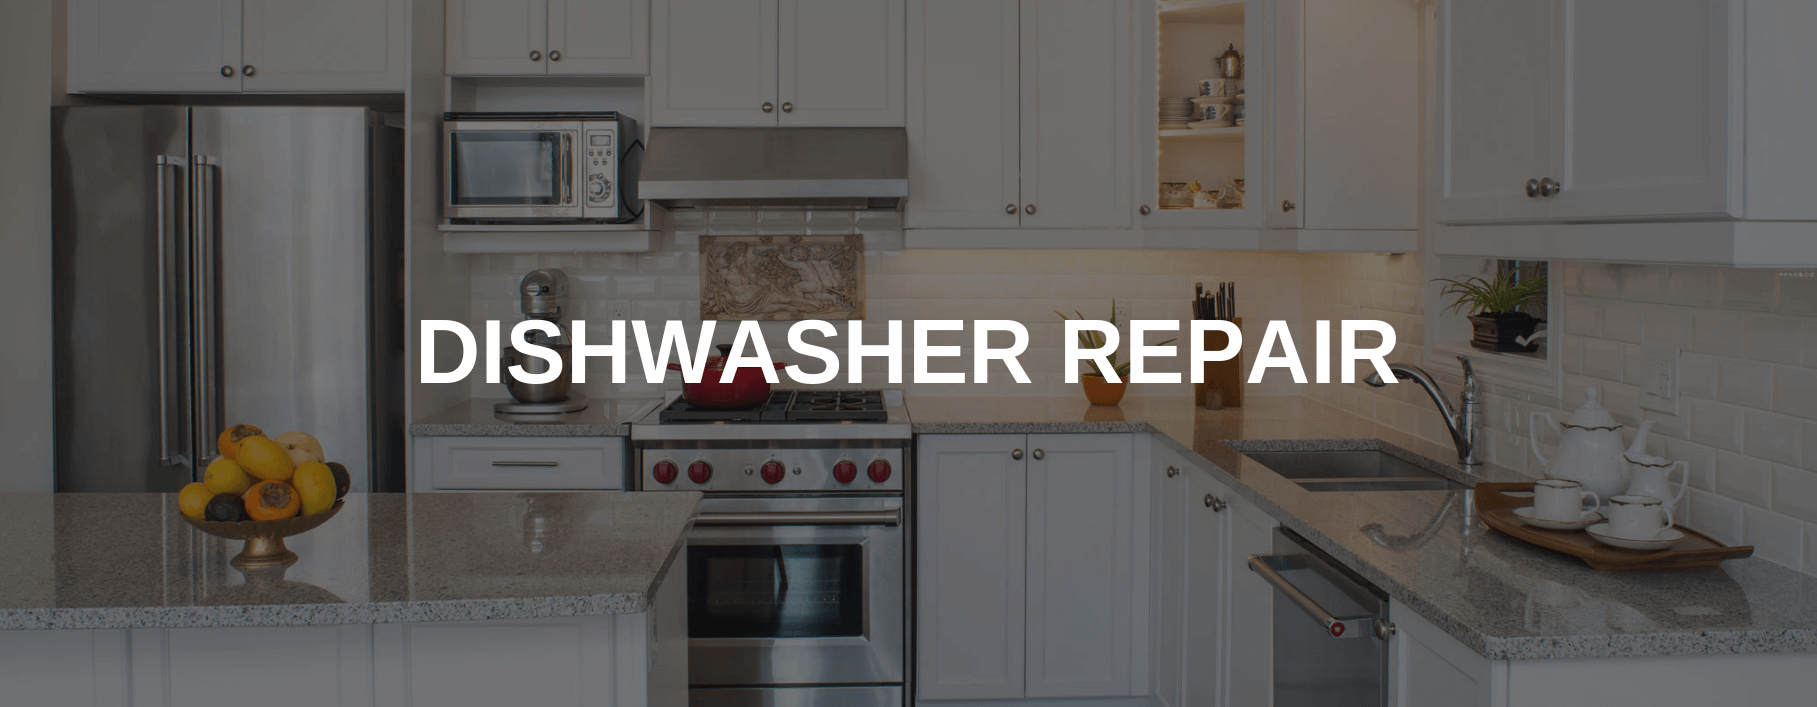 dishwasher repair seattle